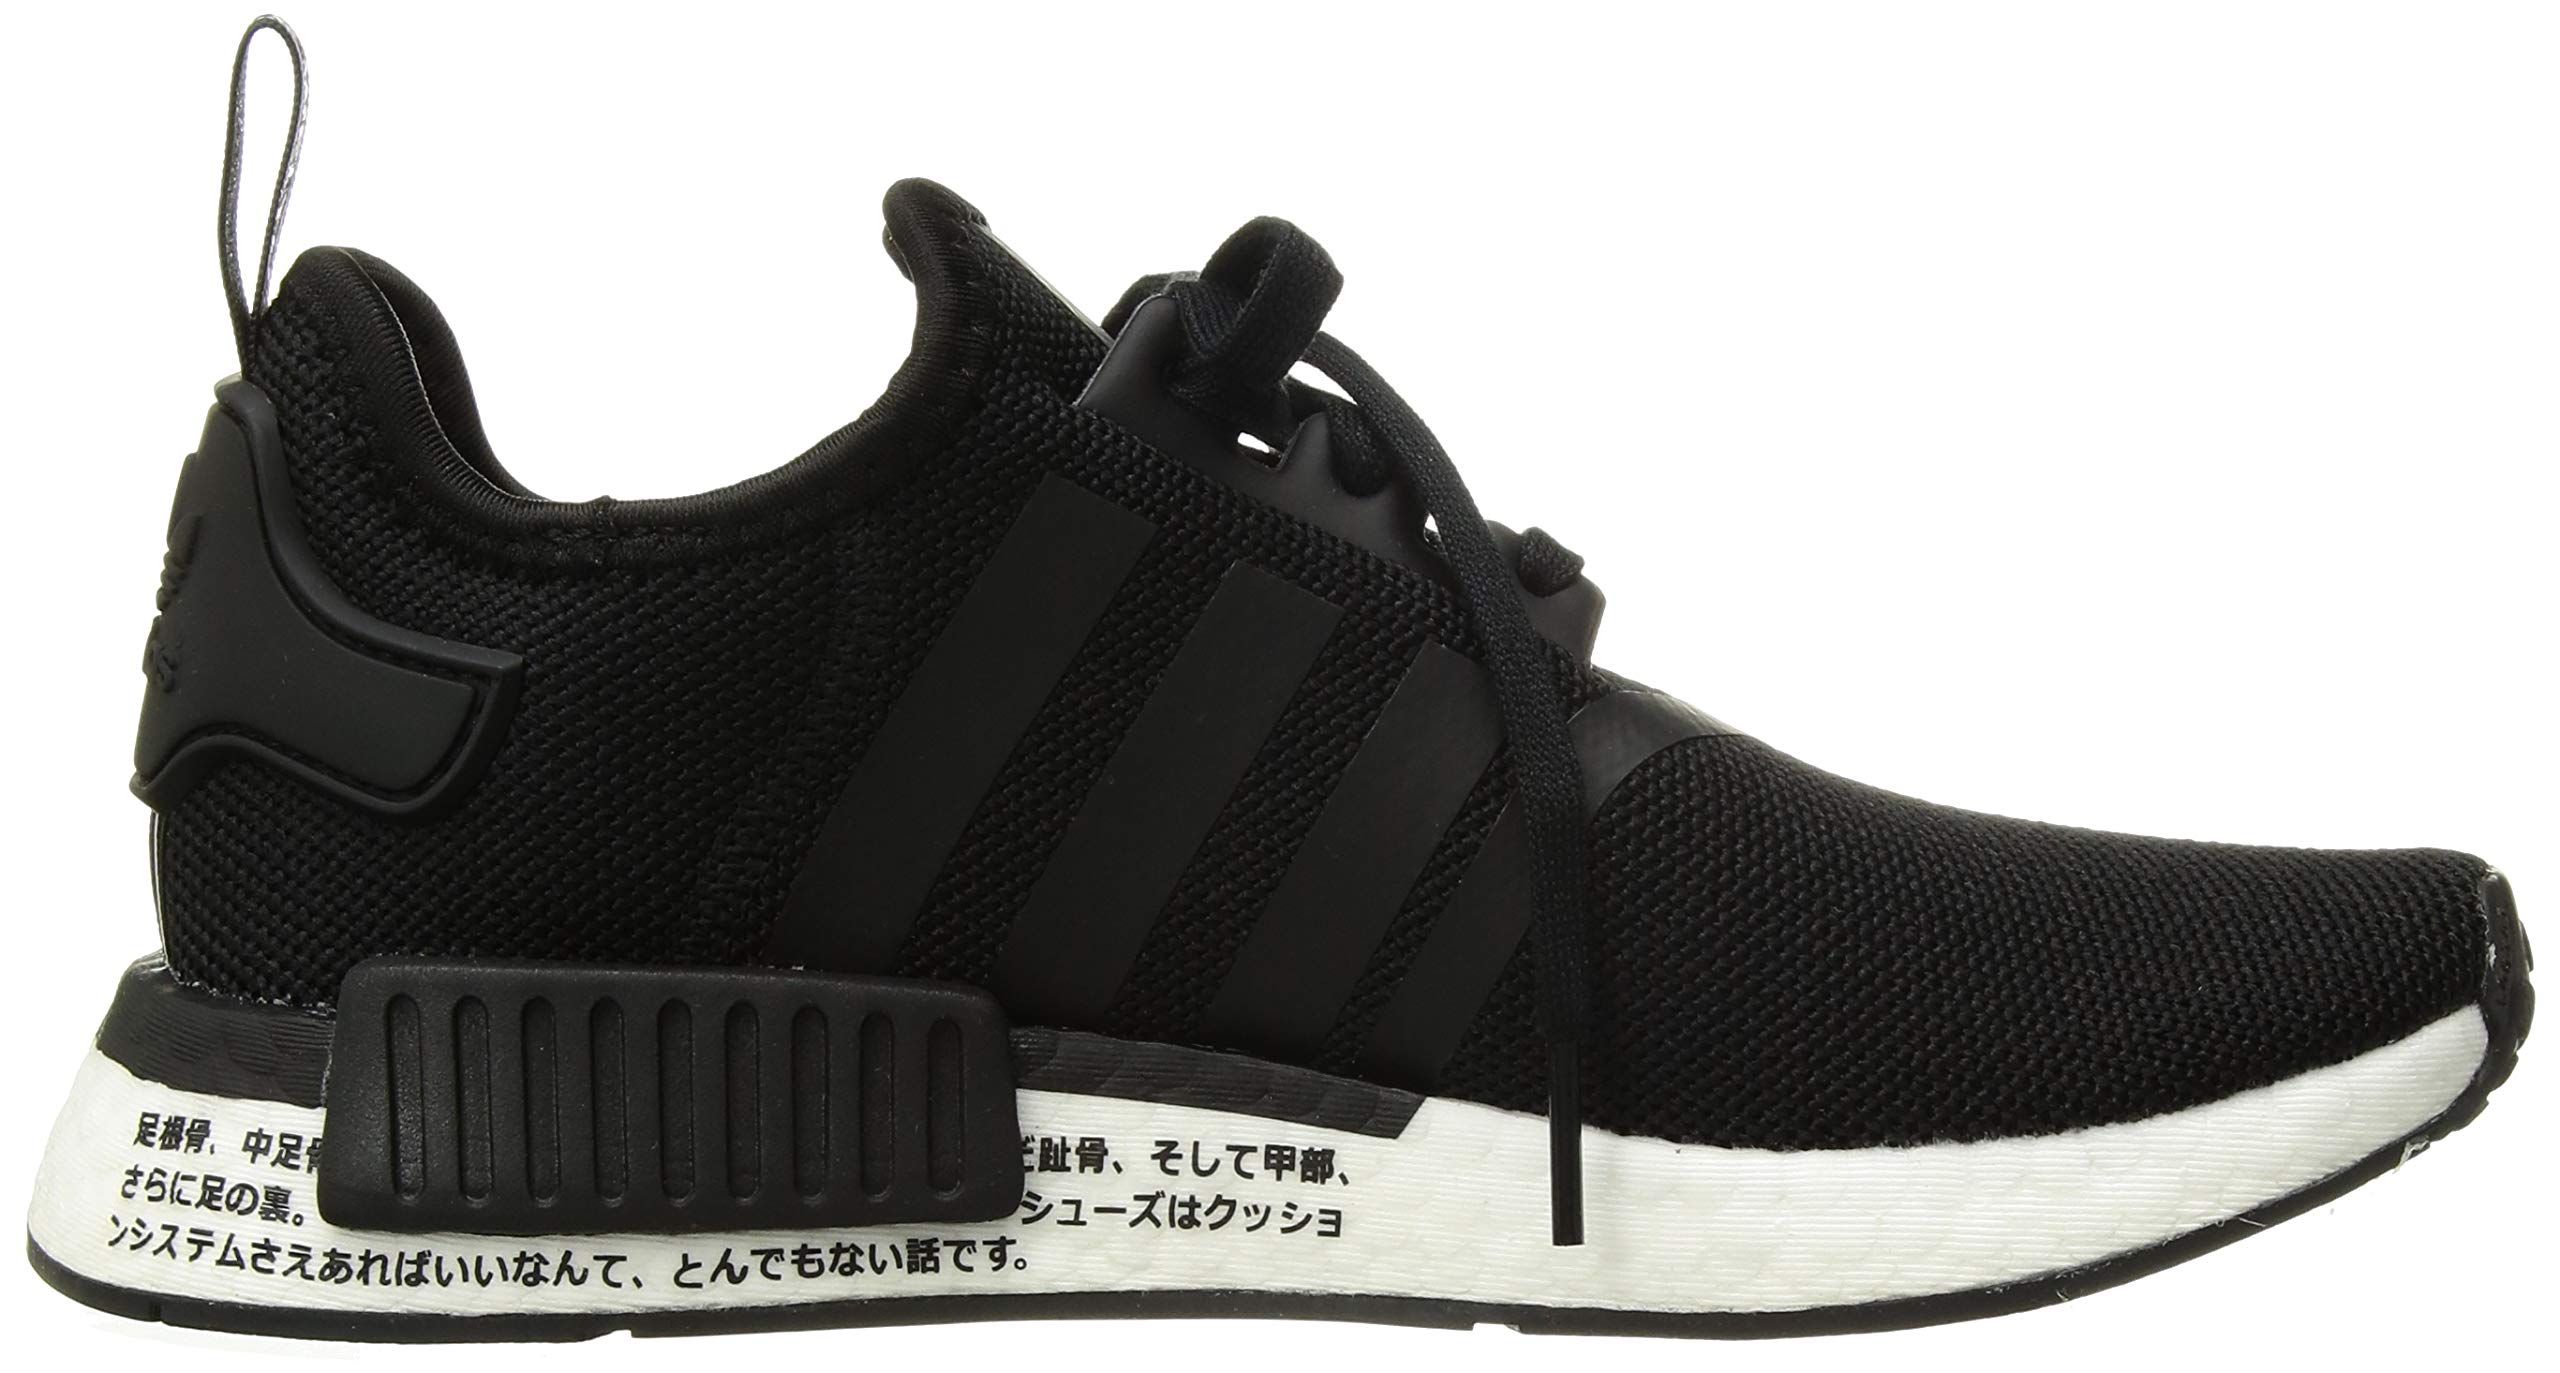 adidas Originals Unisex NMD_R1 Running Shoe, Black/Orchid Tint, 3.5 M US Big Kid by adidas Originals (Image #7)